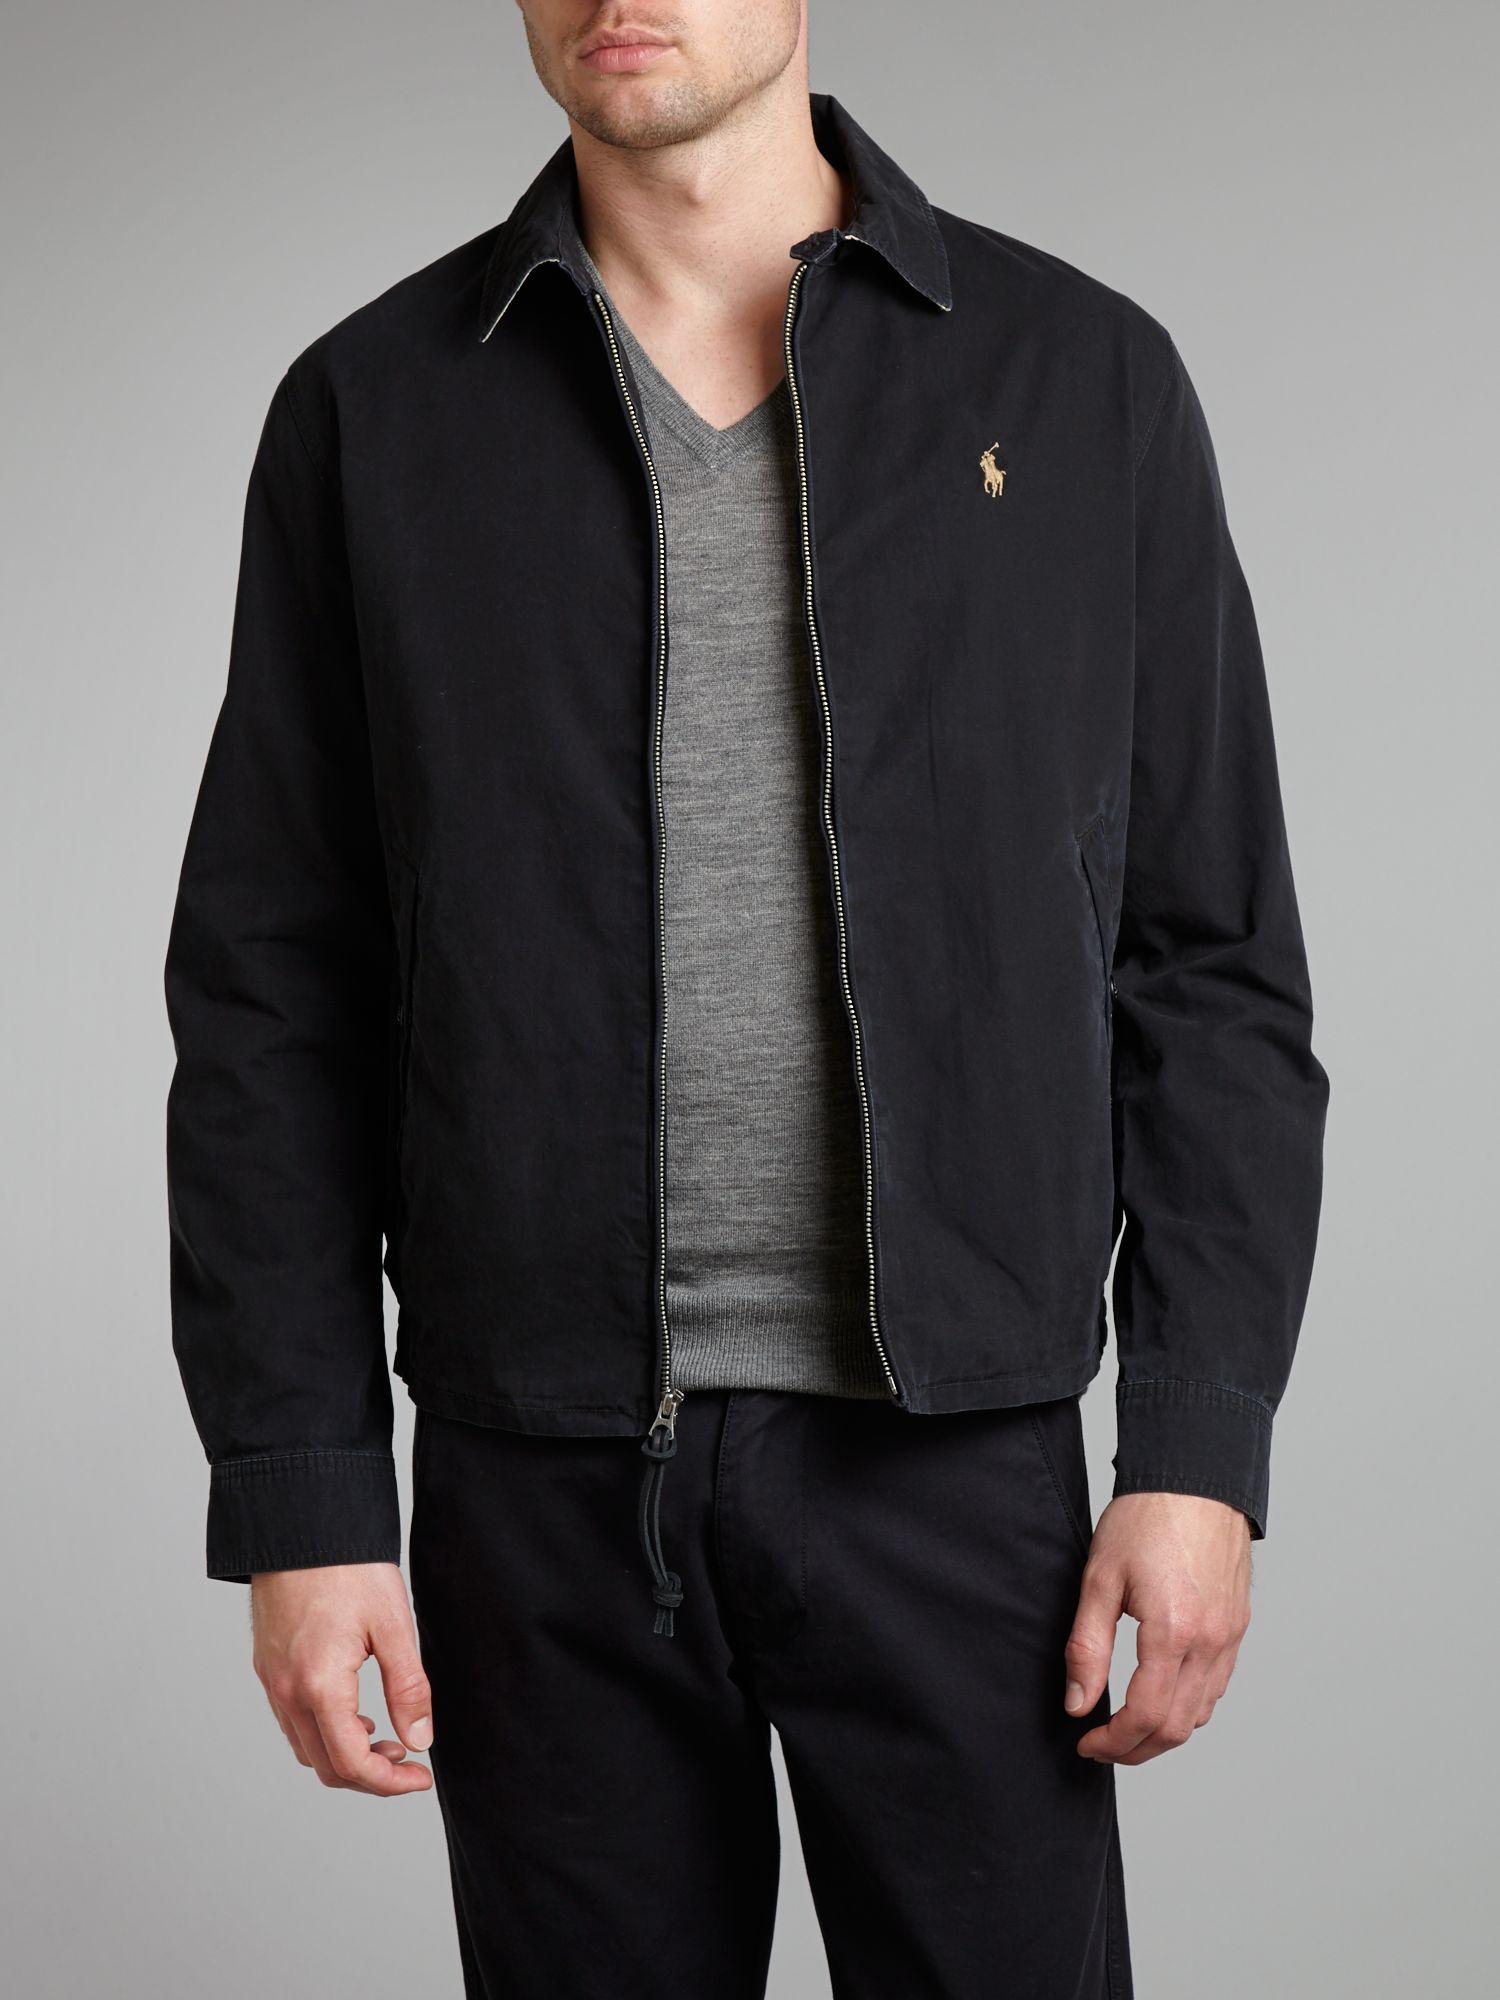 polo ralph lauren shelburne windbreaker jacket in black for men lyst. Black Bedroom Furniture Sets. Home Design Ideas